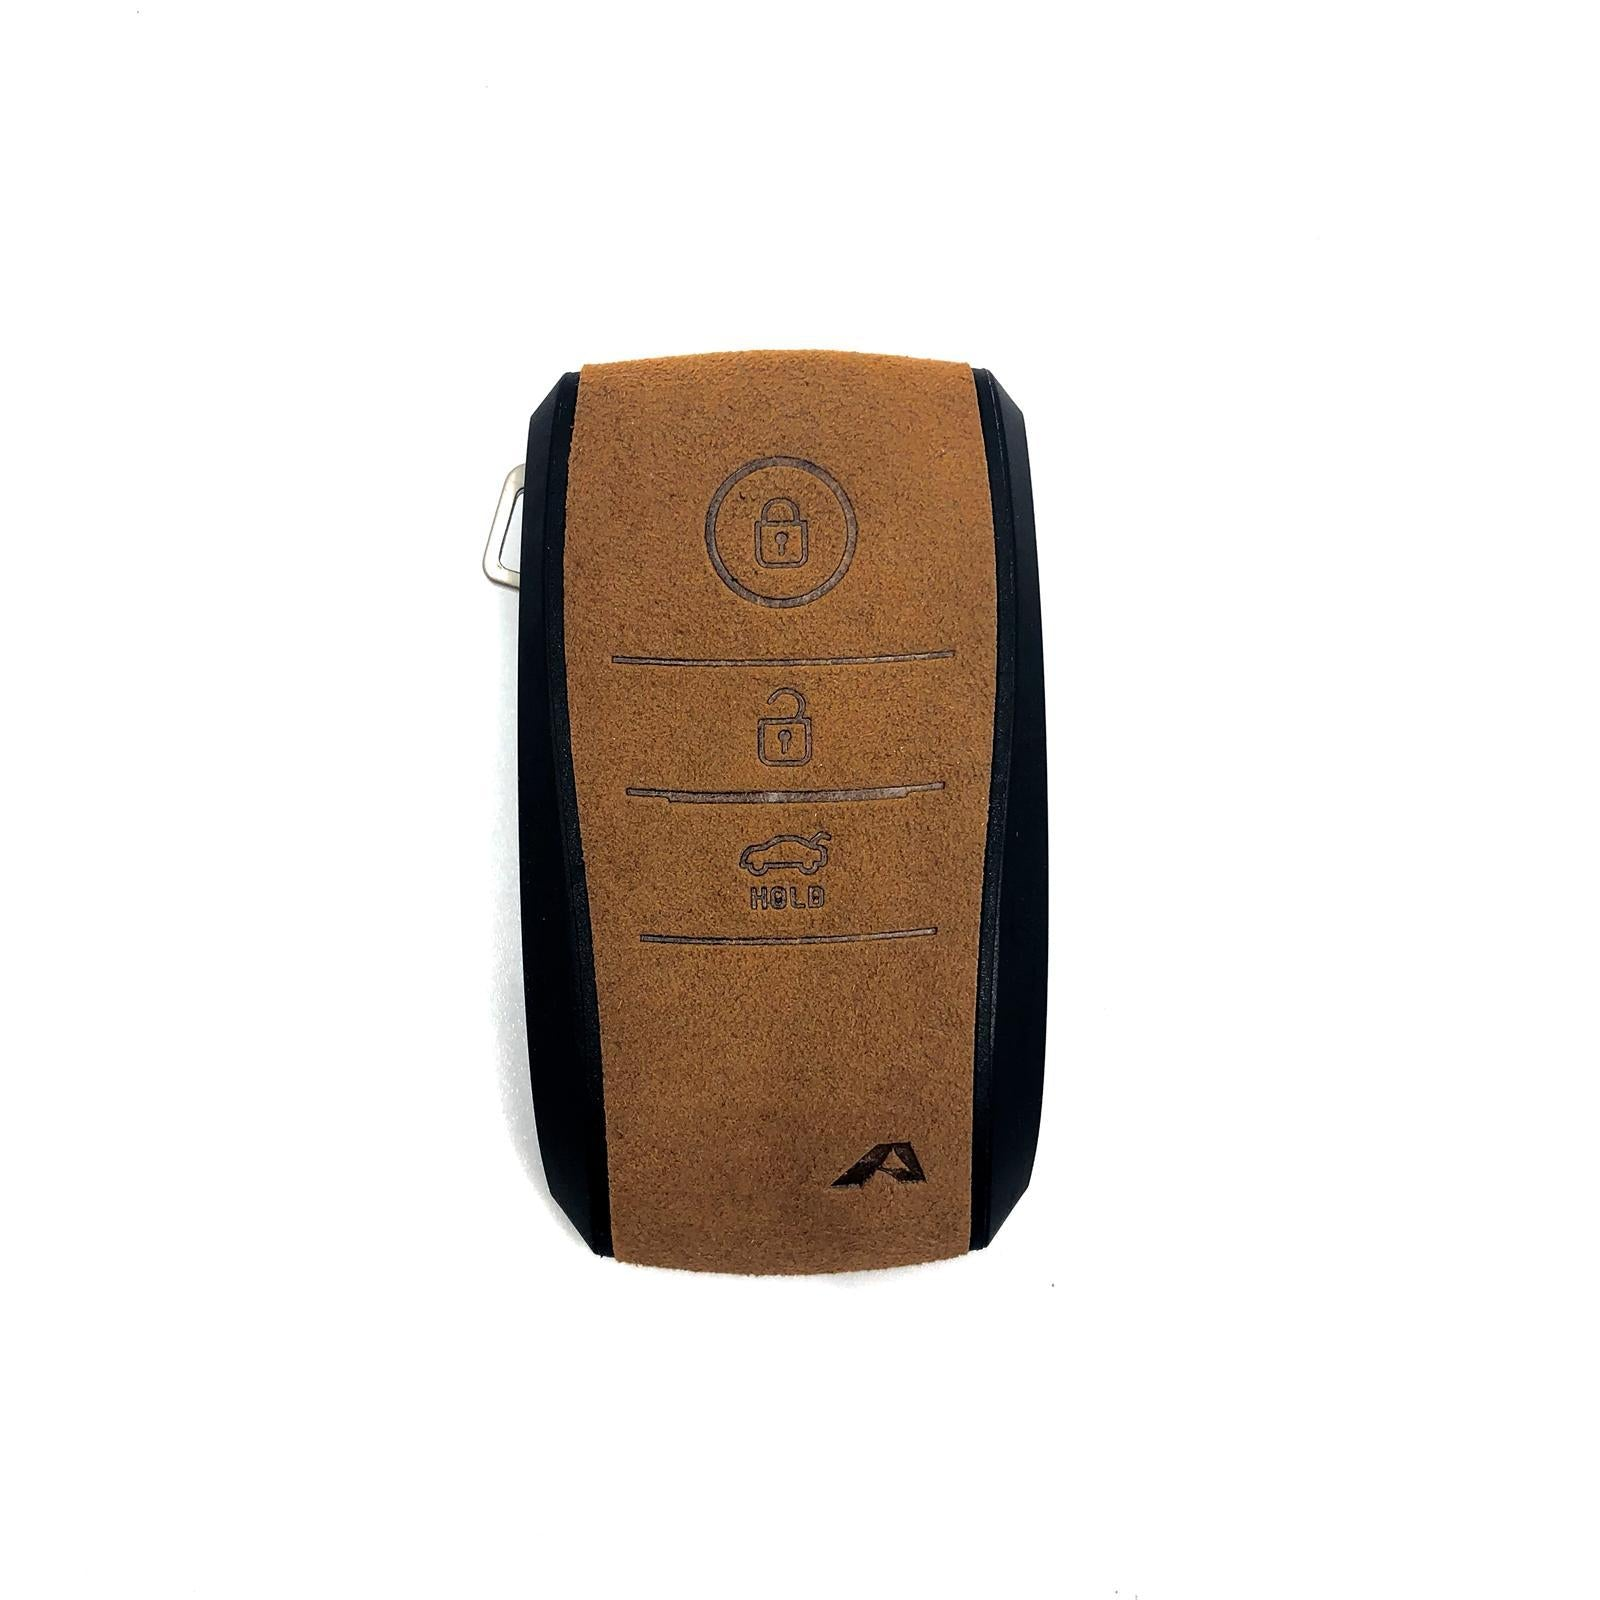 Aegis Car Key Holder - Aero Type for KIA (1900) - Brown